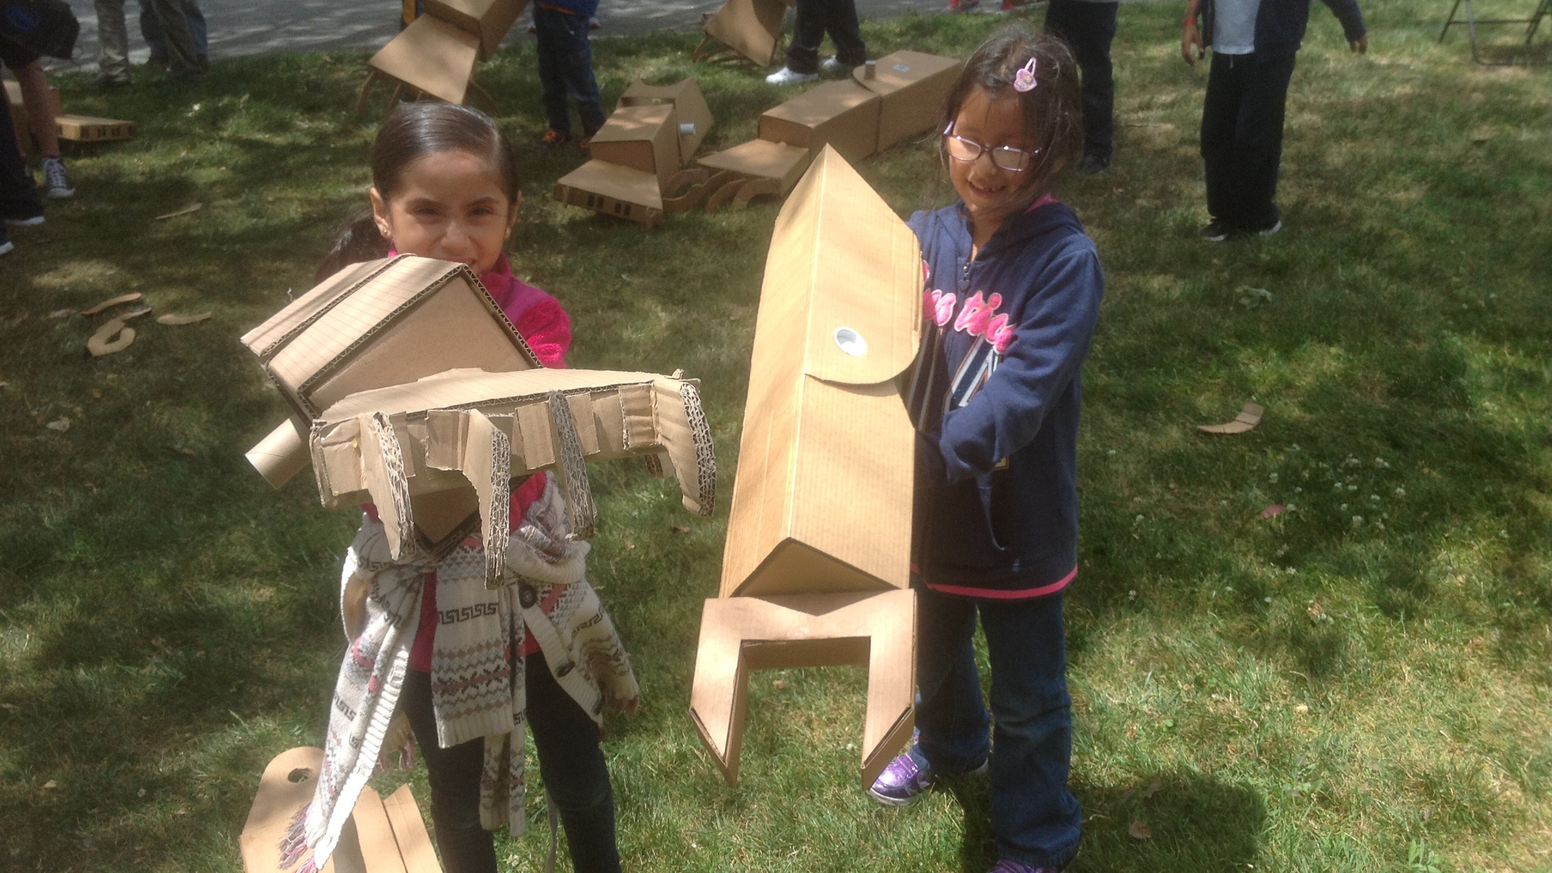 Kid sized giant cardboard robot arms by jason lentz kickstarter get your own diy kit for kid sized giant cardboard robot arms solutioingenieria Gallery